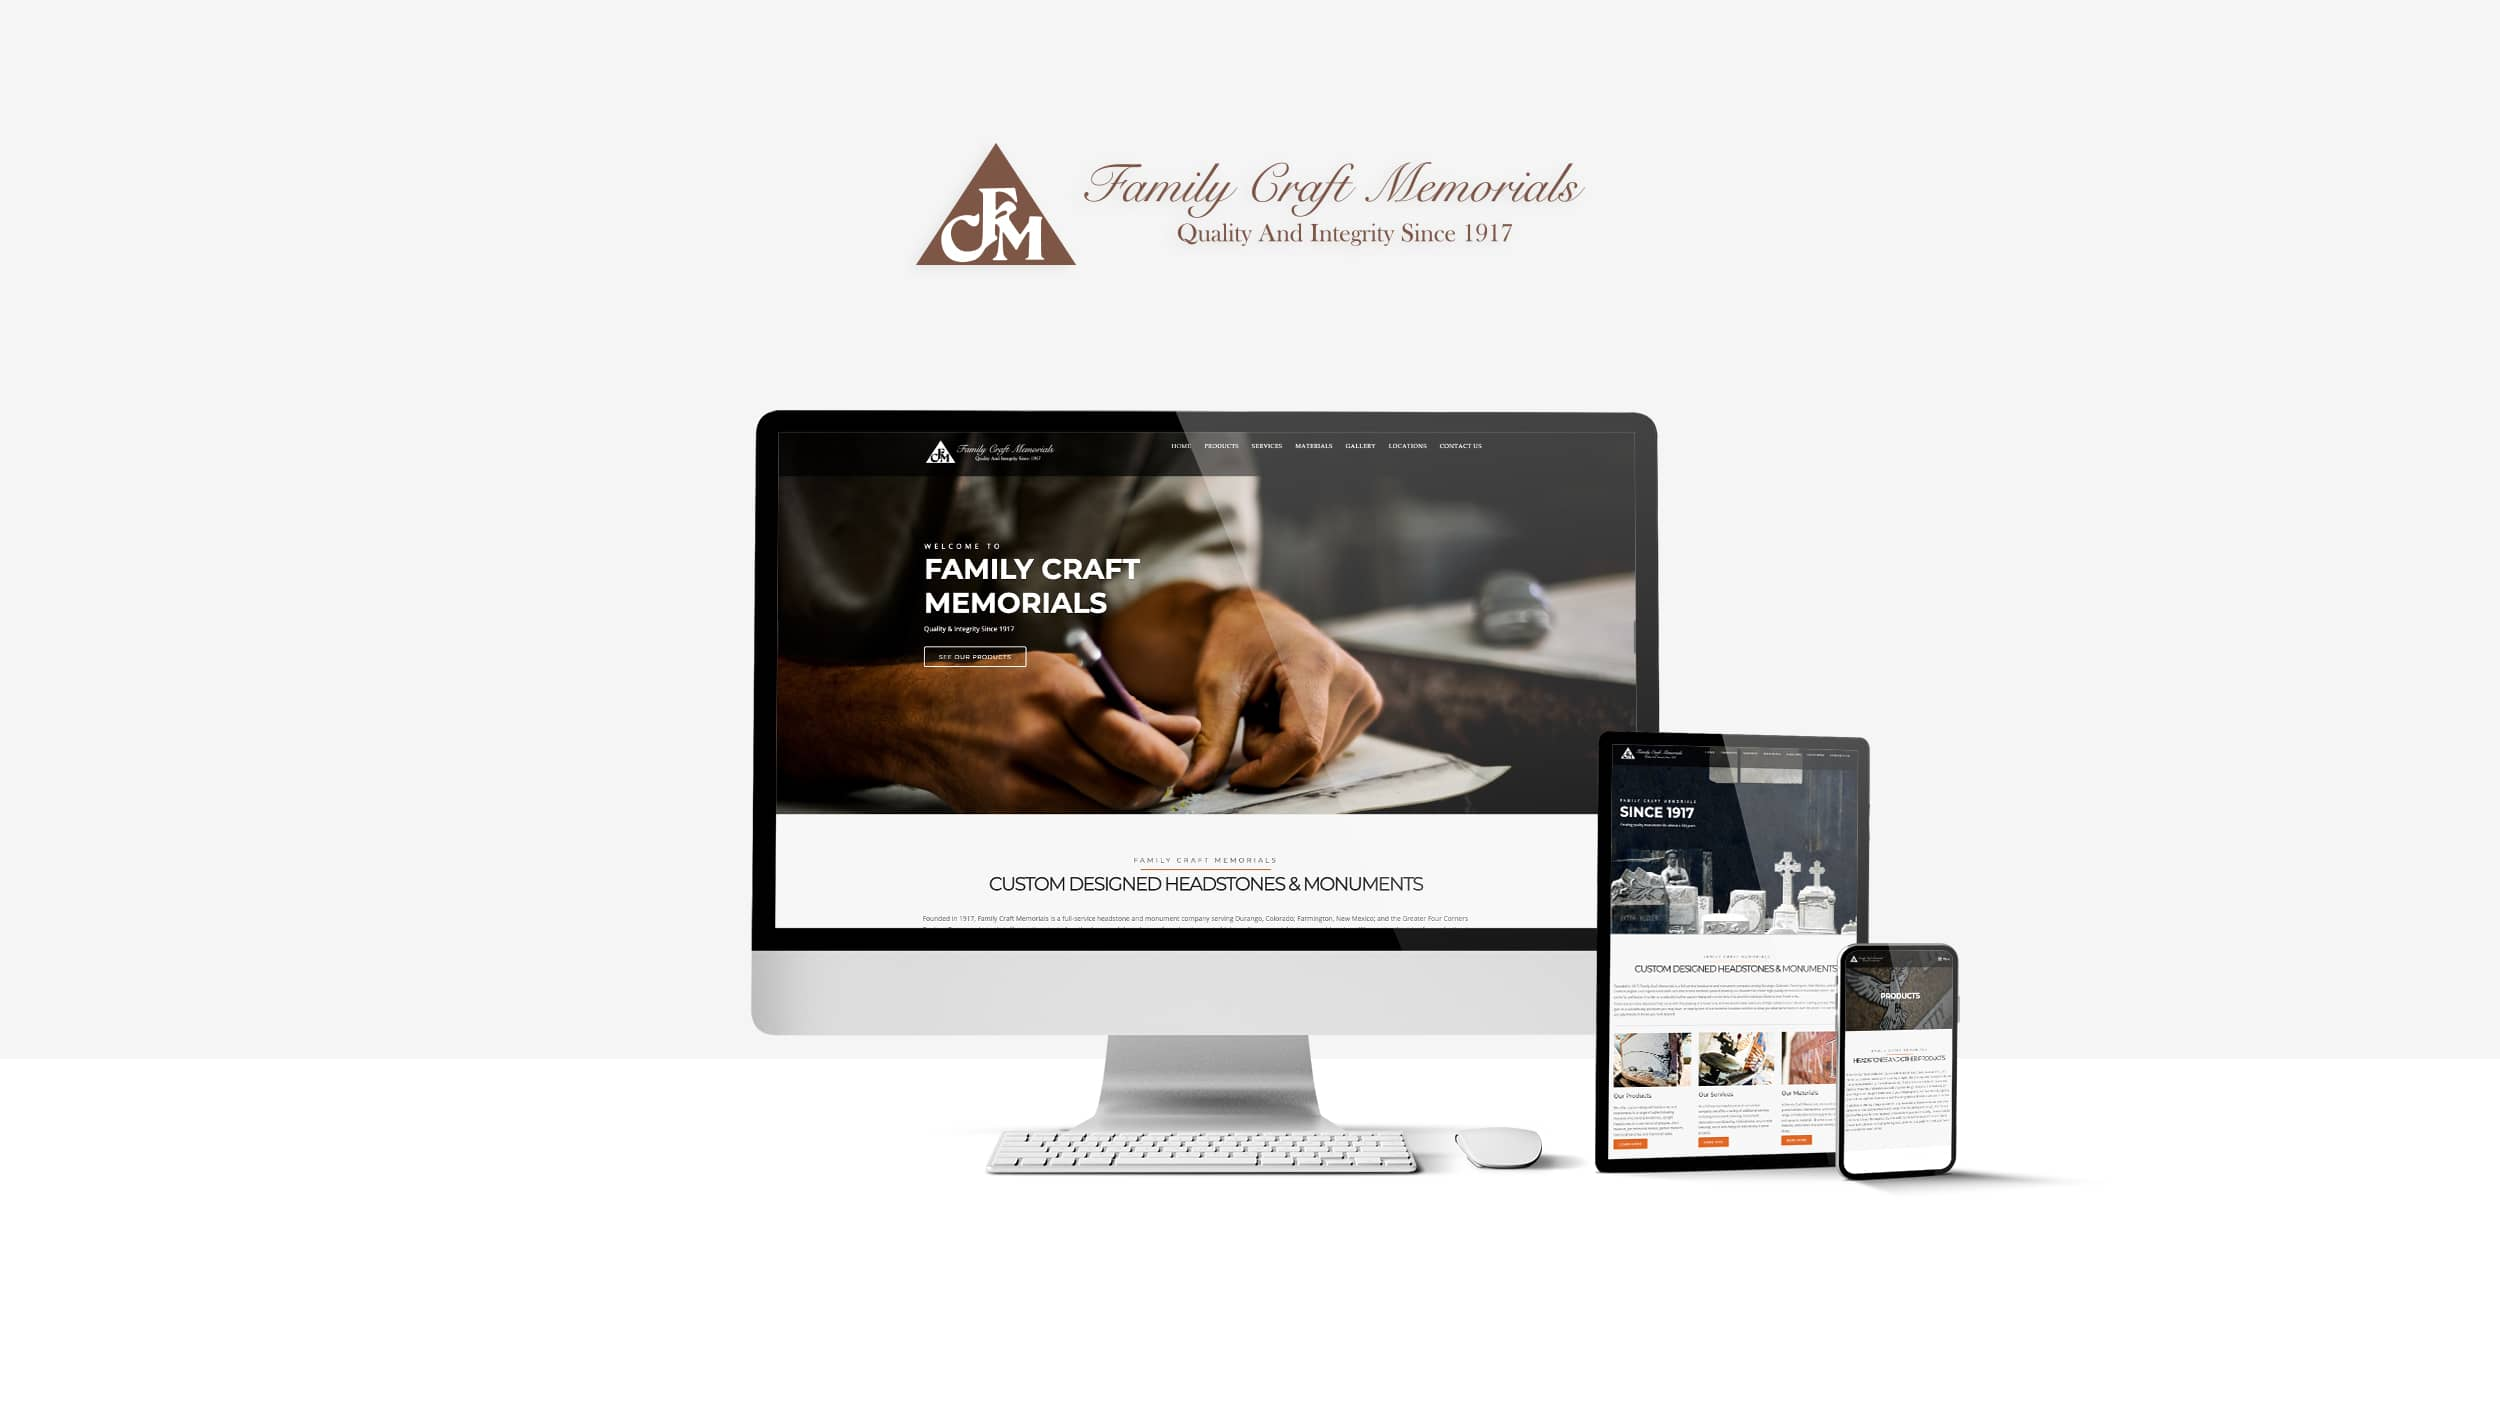 Family Craft Memorial's Website Design on different device sizes